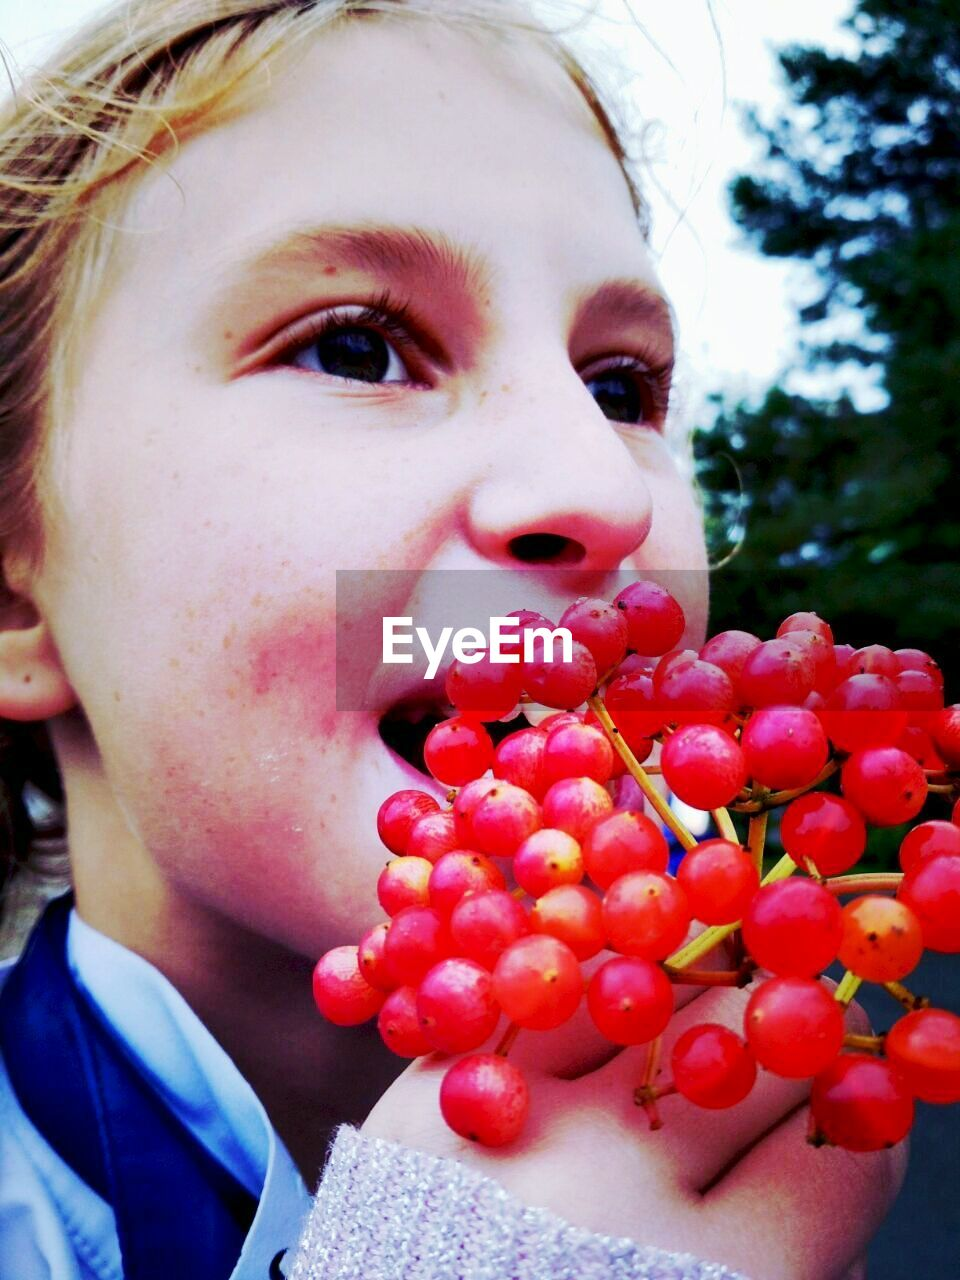 fruit, food and drink, real people, food, healthy eating, focus on foreground, childhood, close-up, one person, outdoors, freshness, day, red, lifestyles, eating, sweet food, people